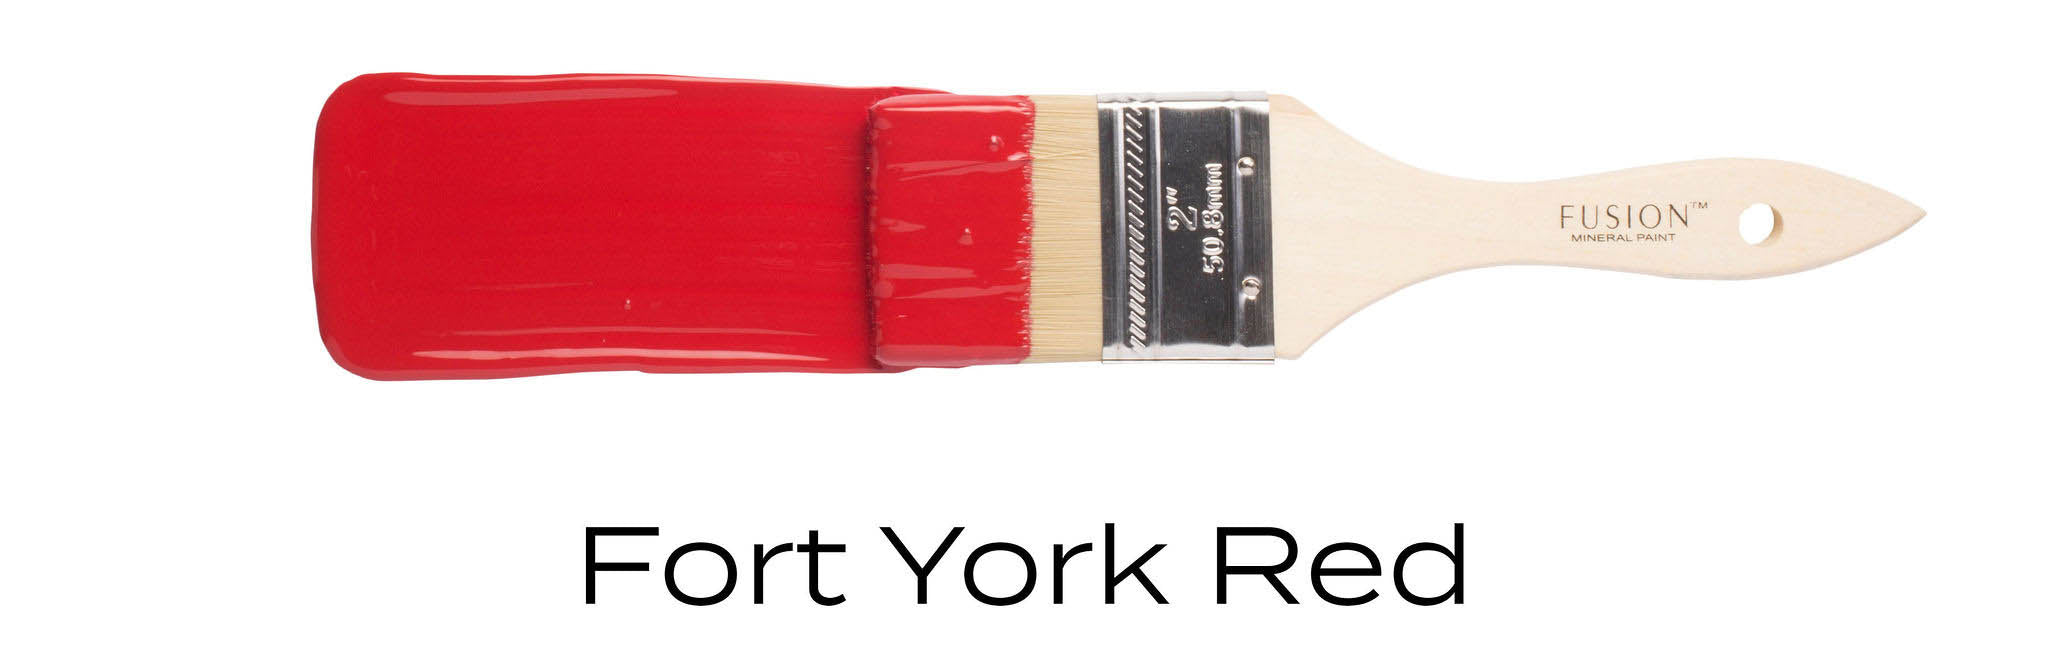 Fort York Red fusion mineral paint example on paint brush stroke